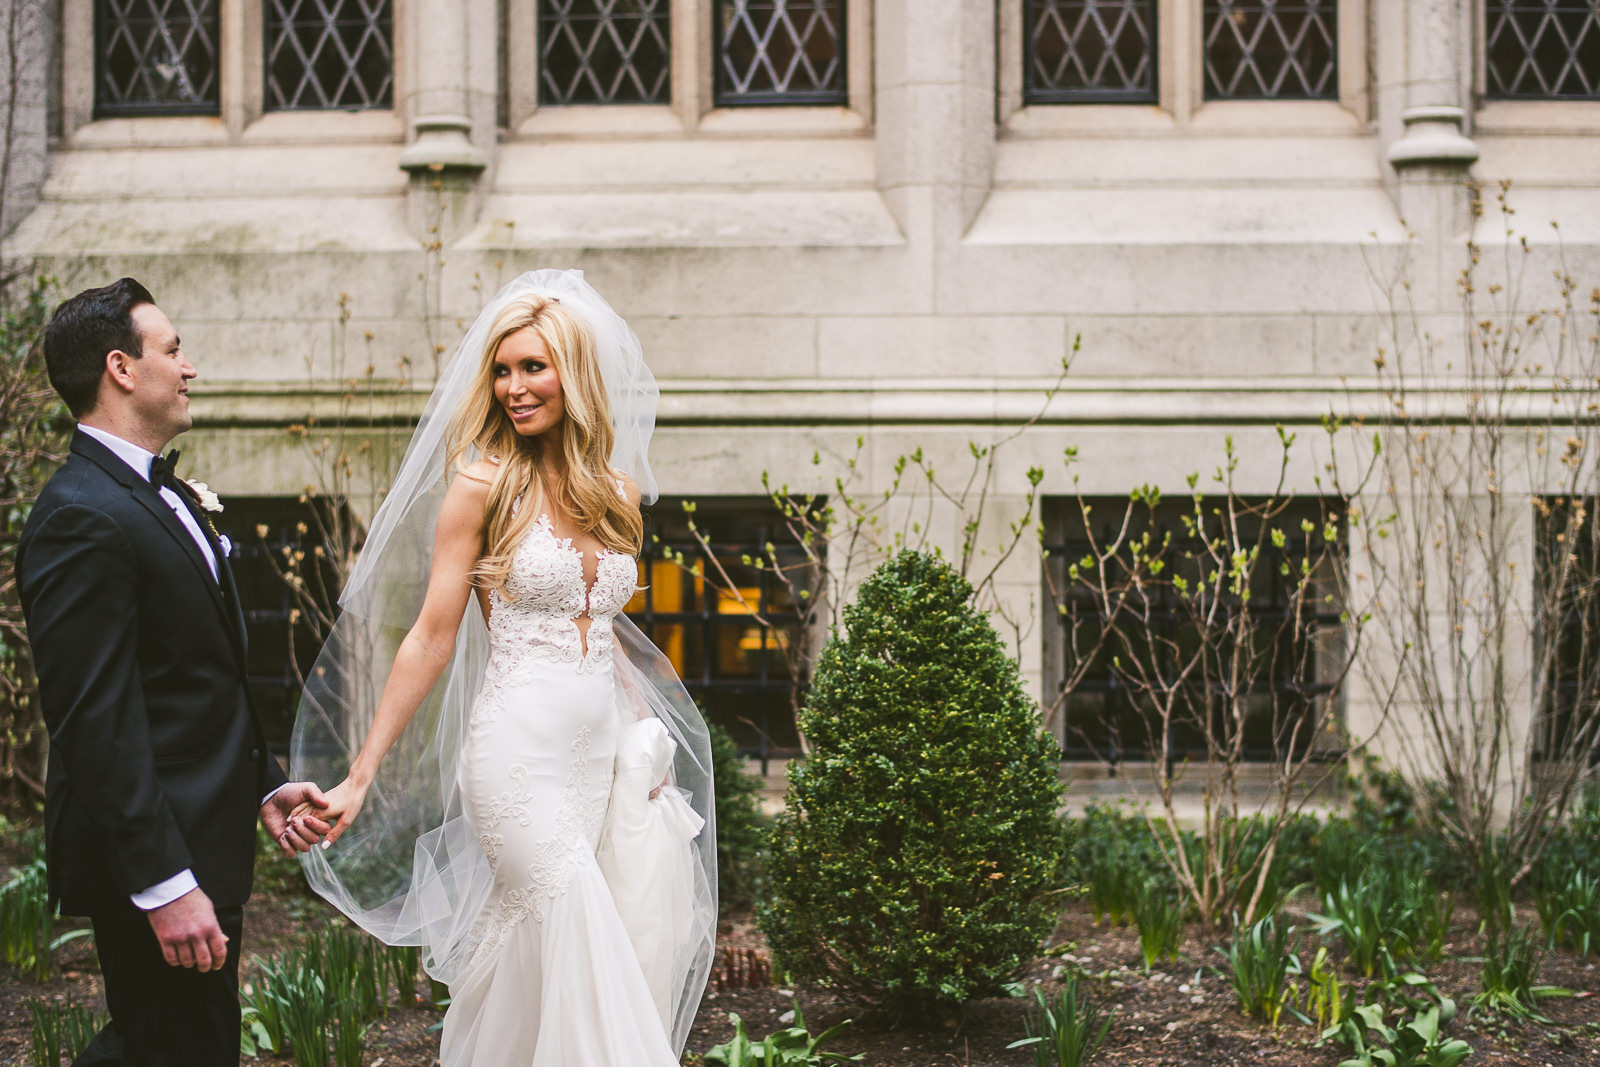 38 chicago wedding photos - Kayla + Terry // Drake Hotel Chicago Wedding Photos